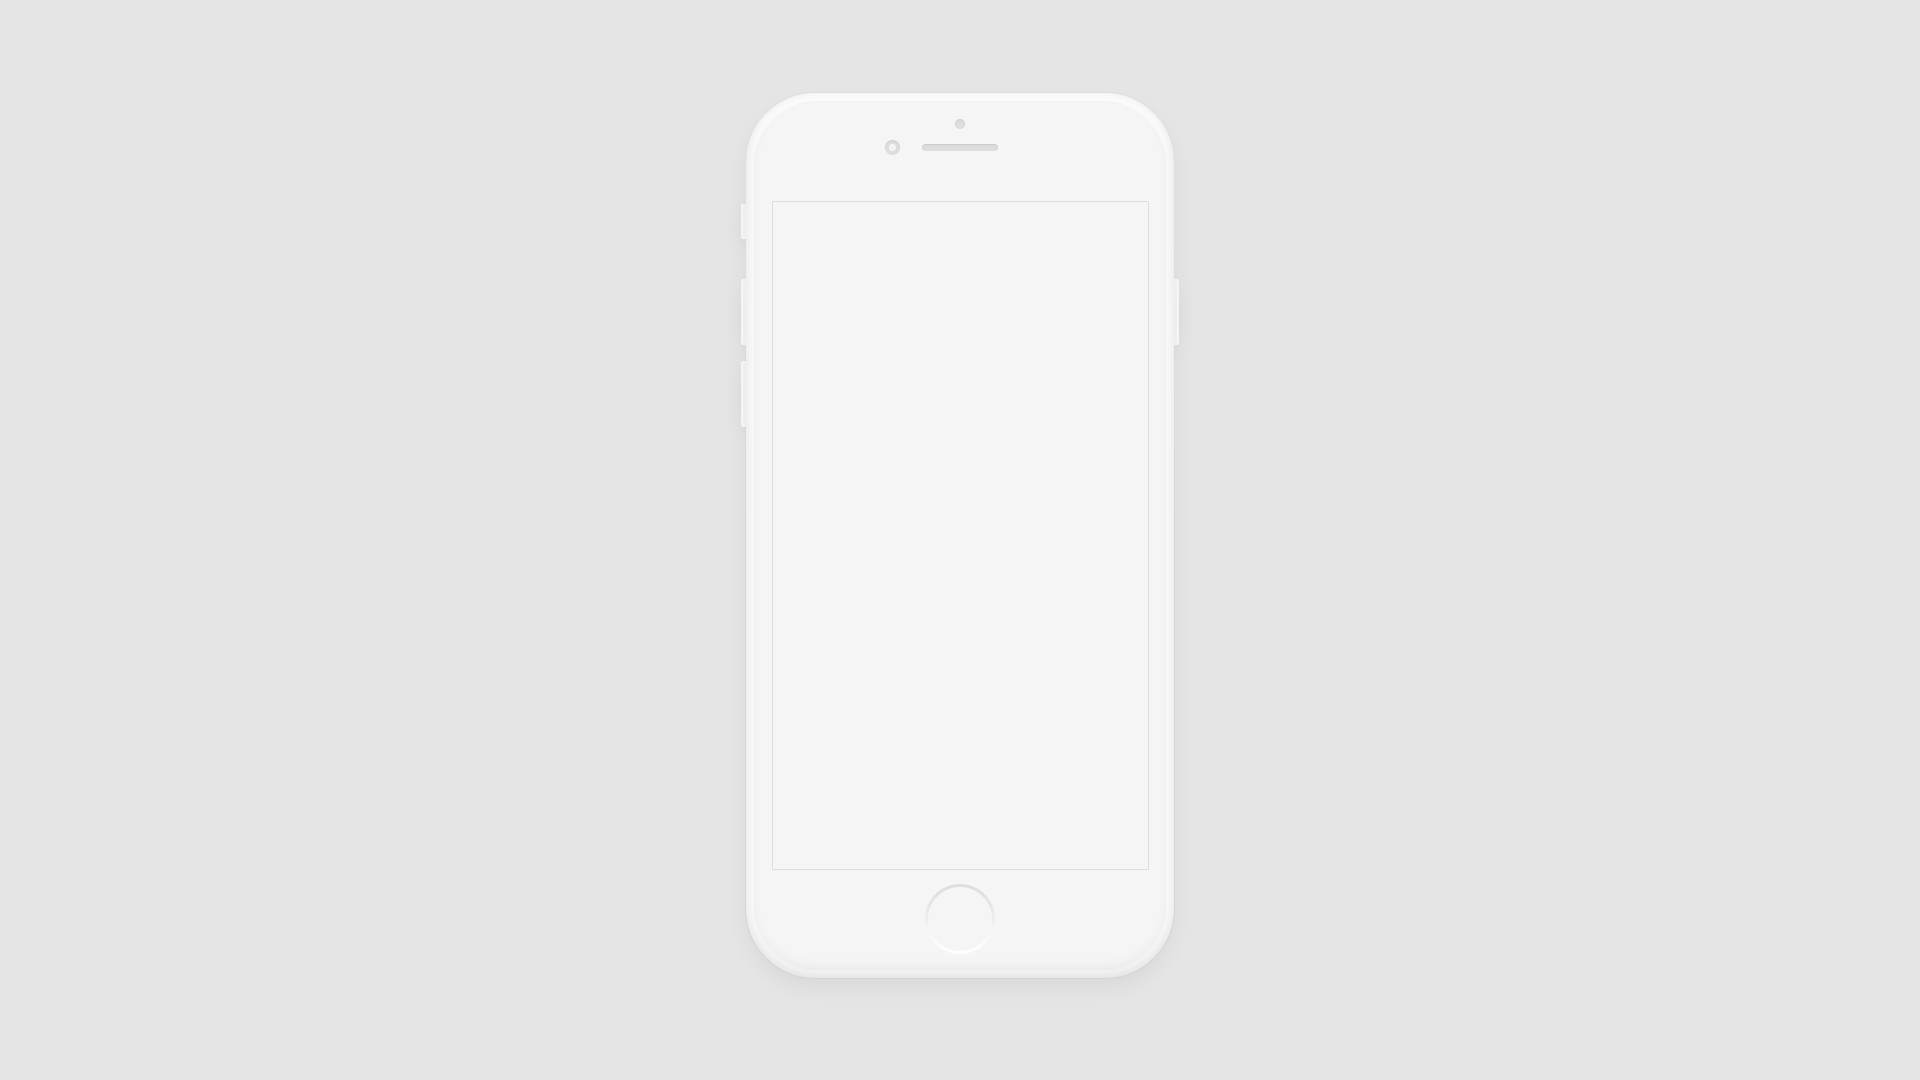 Iphone 7 Png (91+ images in Collection) Page 1.